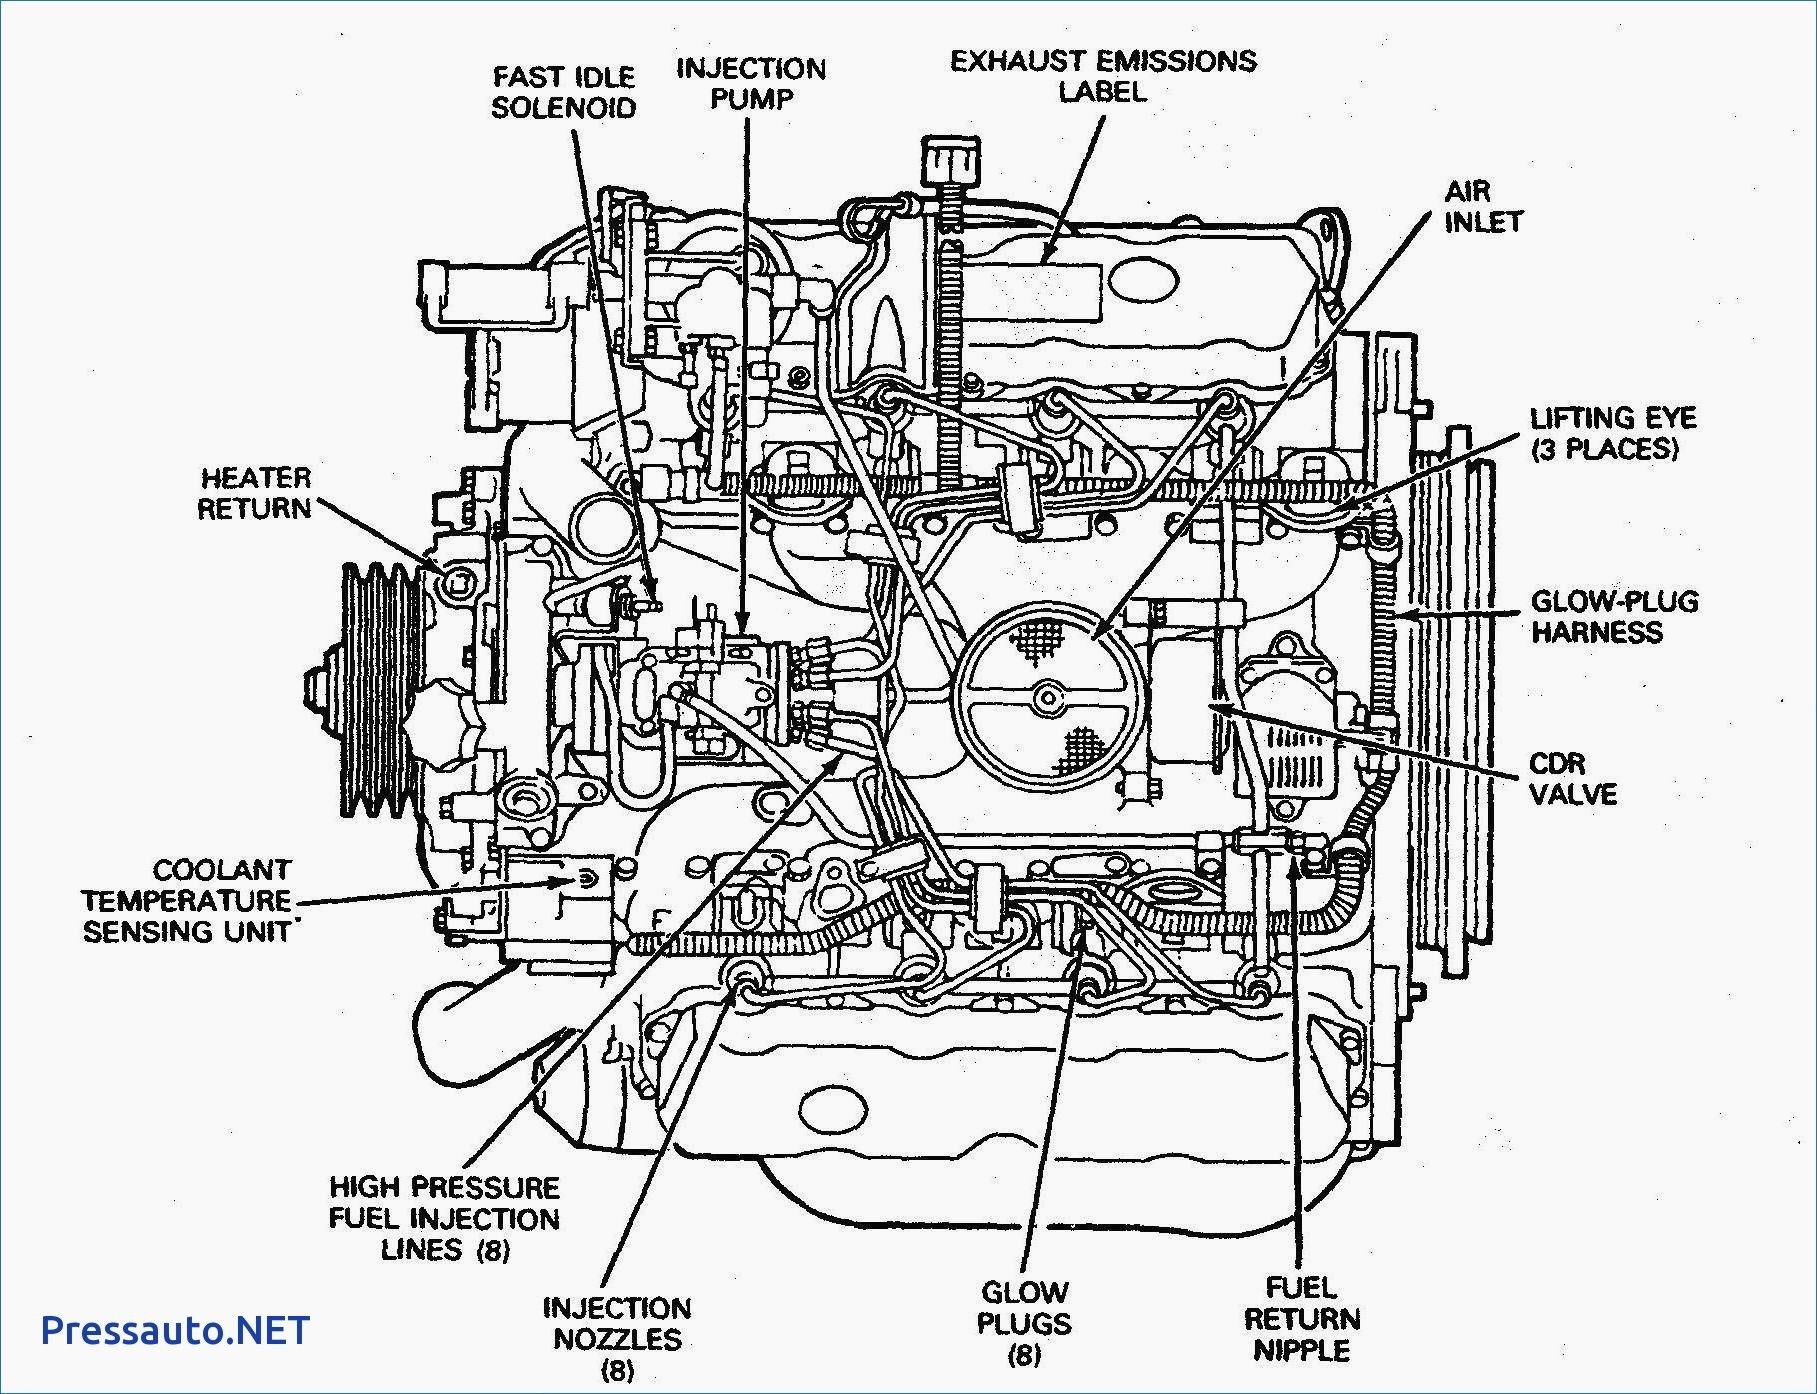 1996 Ford 7 3 Diesel Engine Diagram Great Installation Of Wiring 8 Images Gallery Idi Parts Explained Rh 20 101 Crocodilecruisedarwin Com 73 Liter